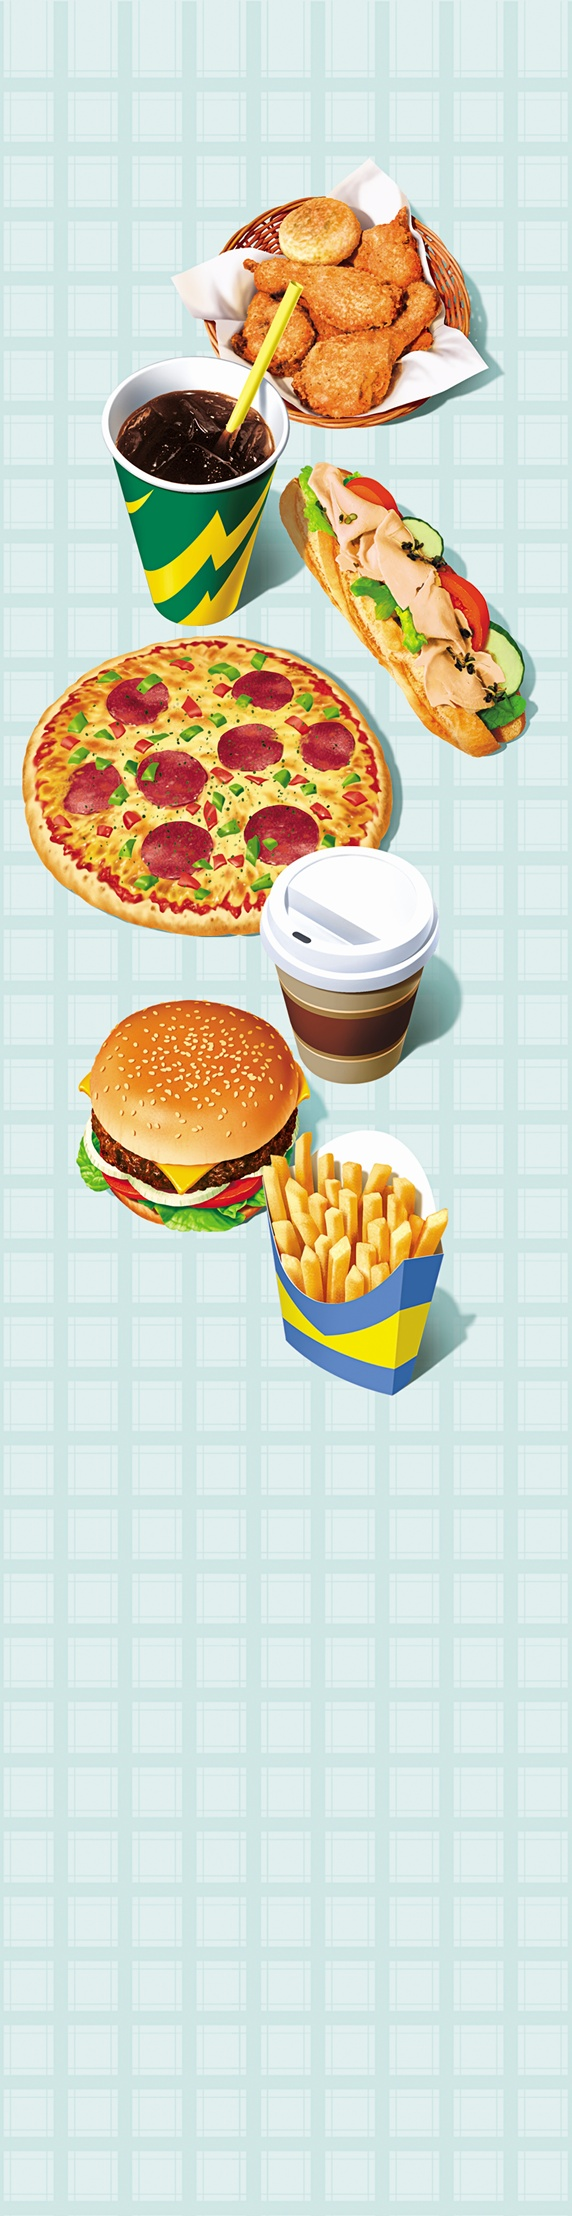 Range of unhealthy fast food